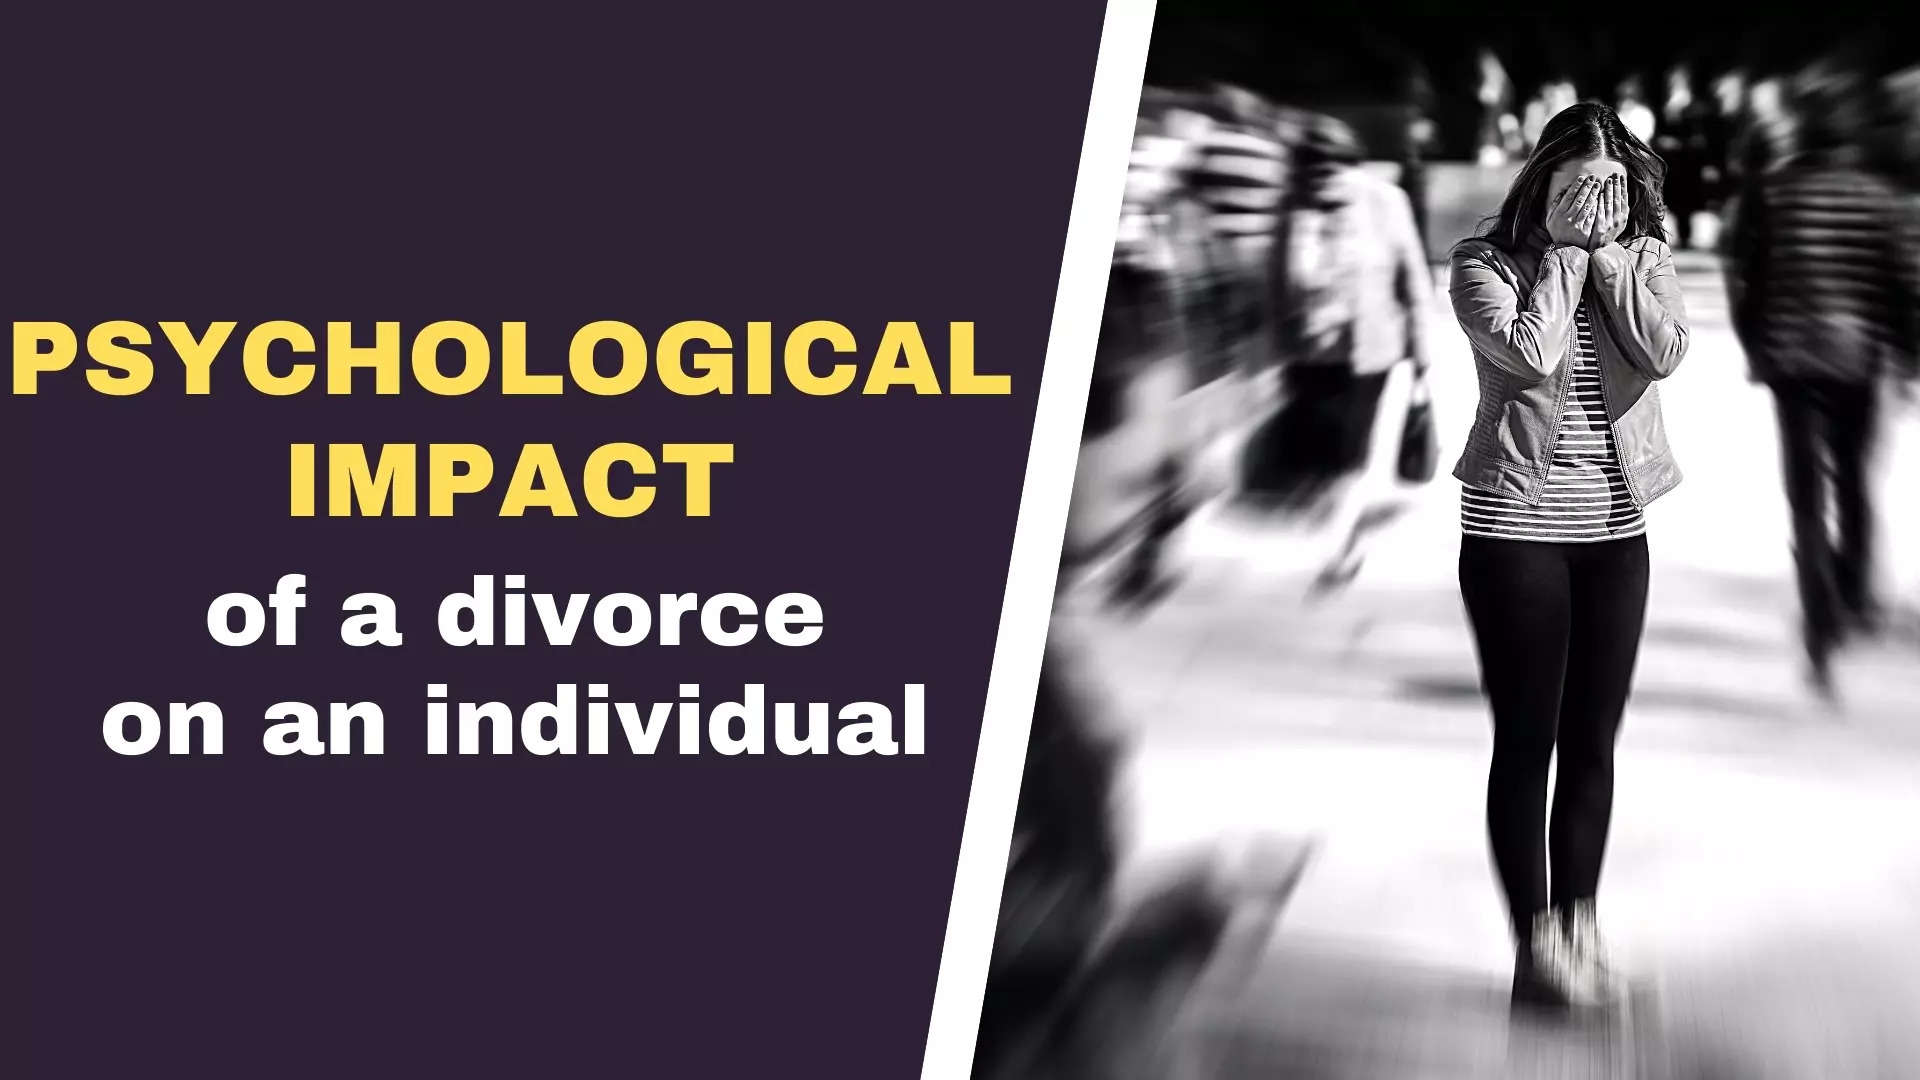 psychological-impact-of-a-divorce-on-an-individual